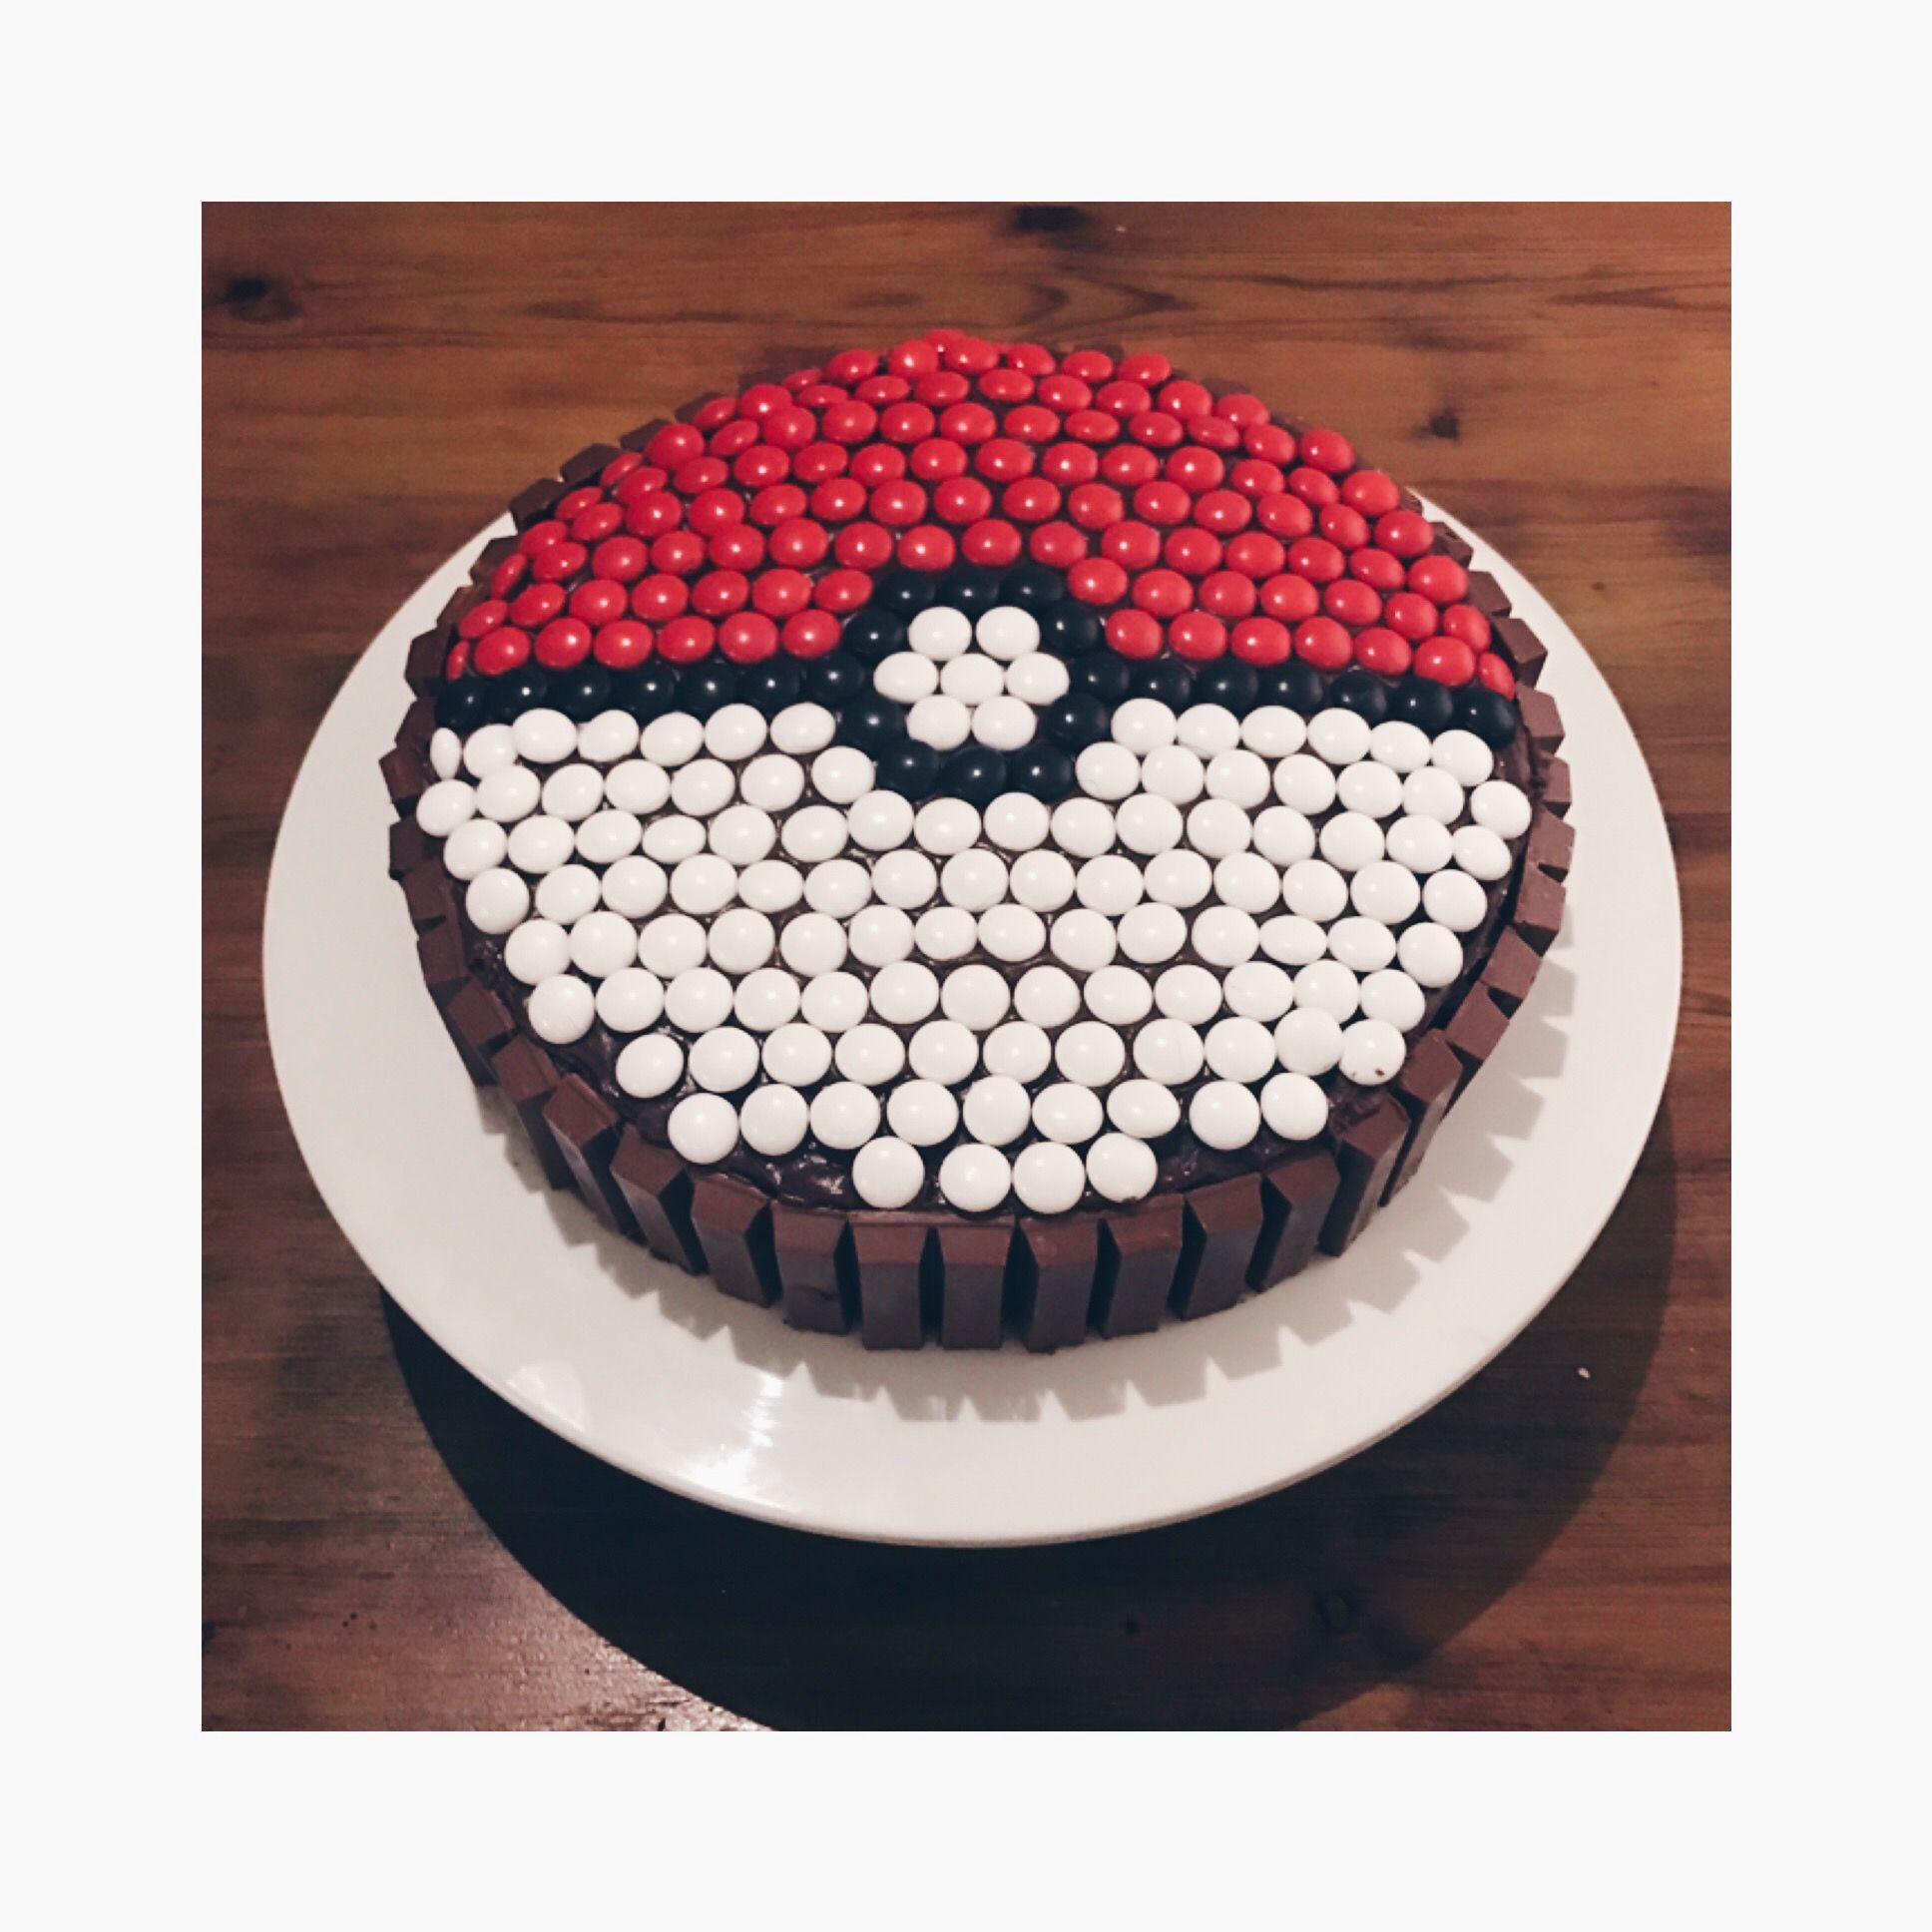 I M So Proud Of Myself That I Was Able To Make A Pokeball